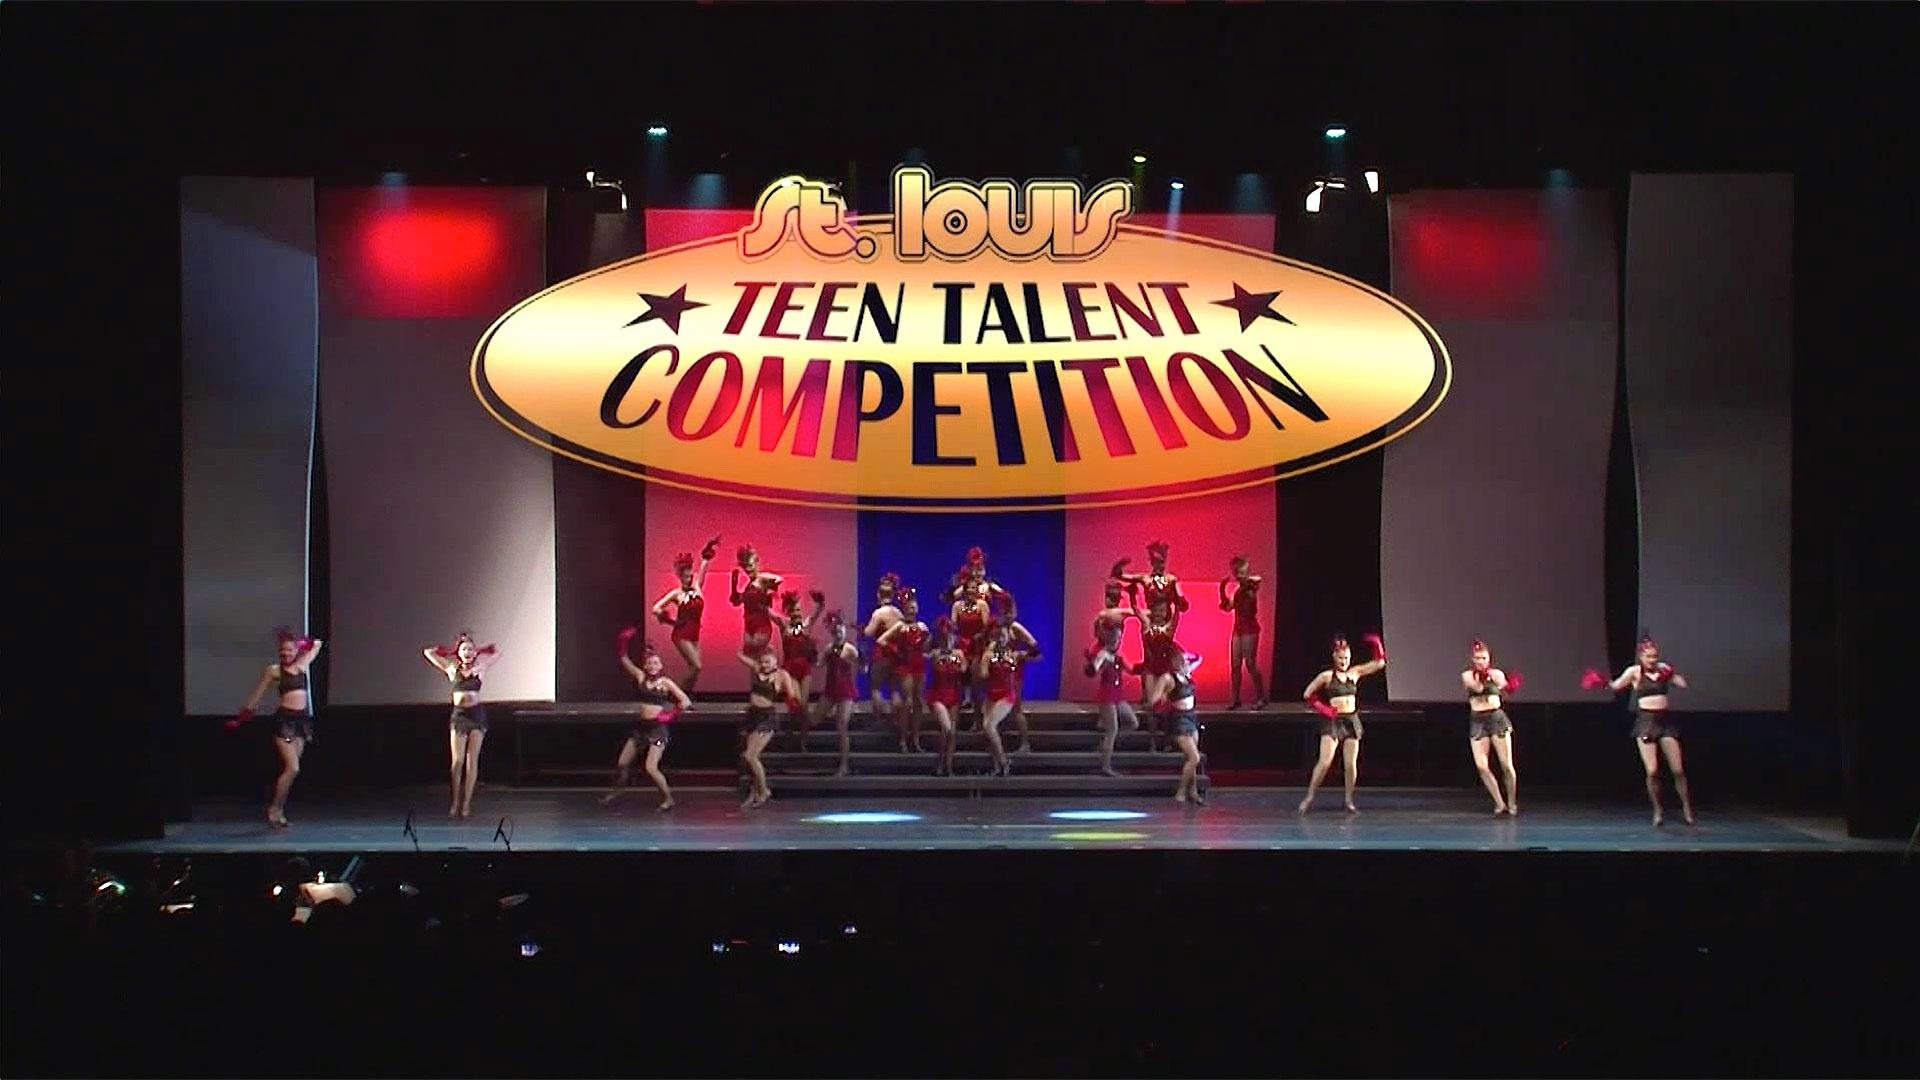 St. Louis Teen Talent Competition 2018